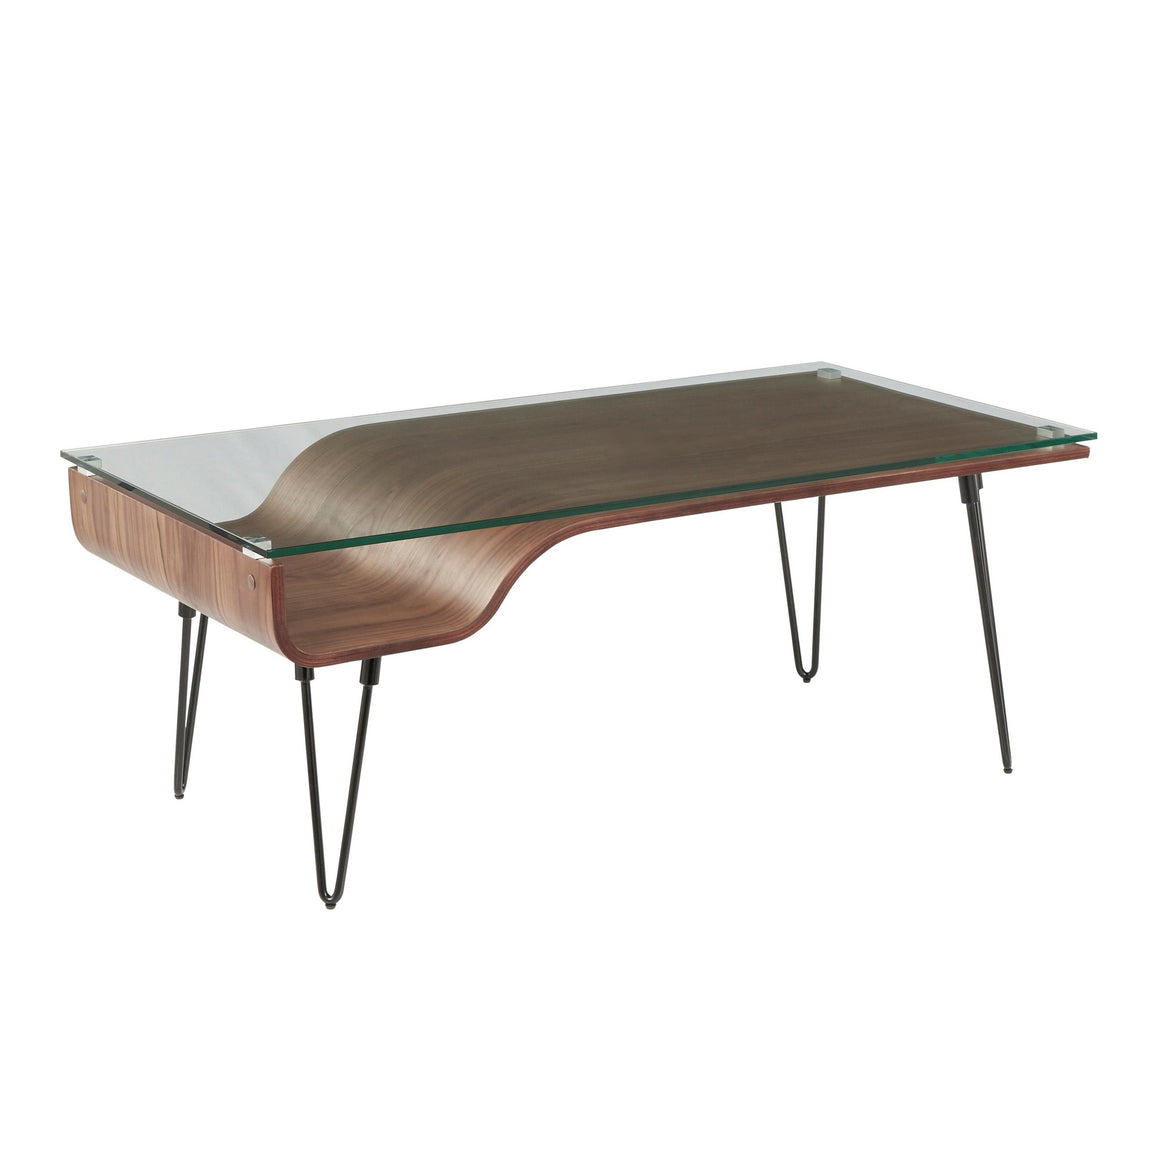 Avery Mid-Century Modern Coffee Table in Walnut Wood, Clear Glass, and Black Metal by Lumisource